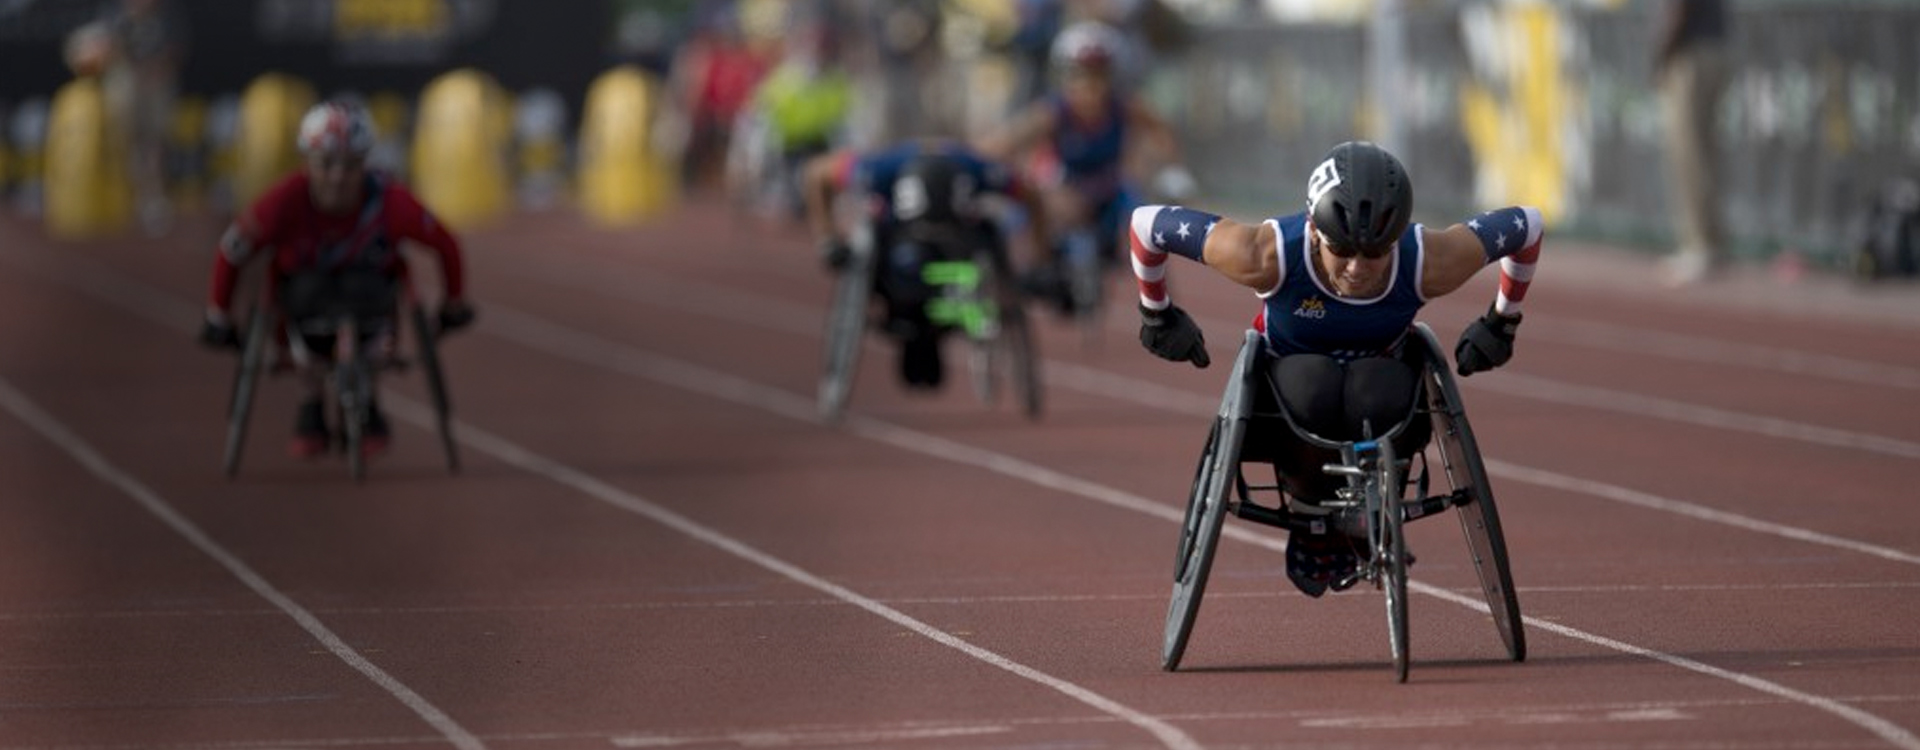 Athlete in a sprinting wheelchair